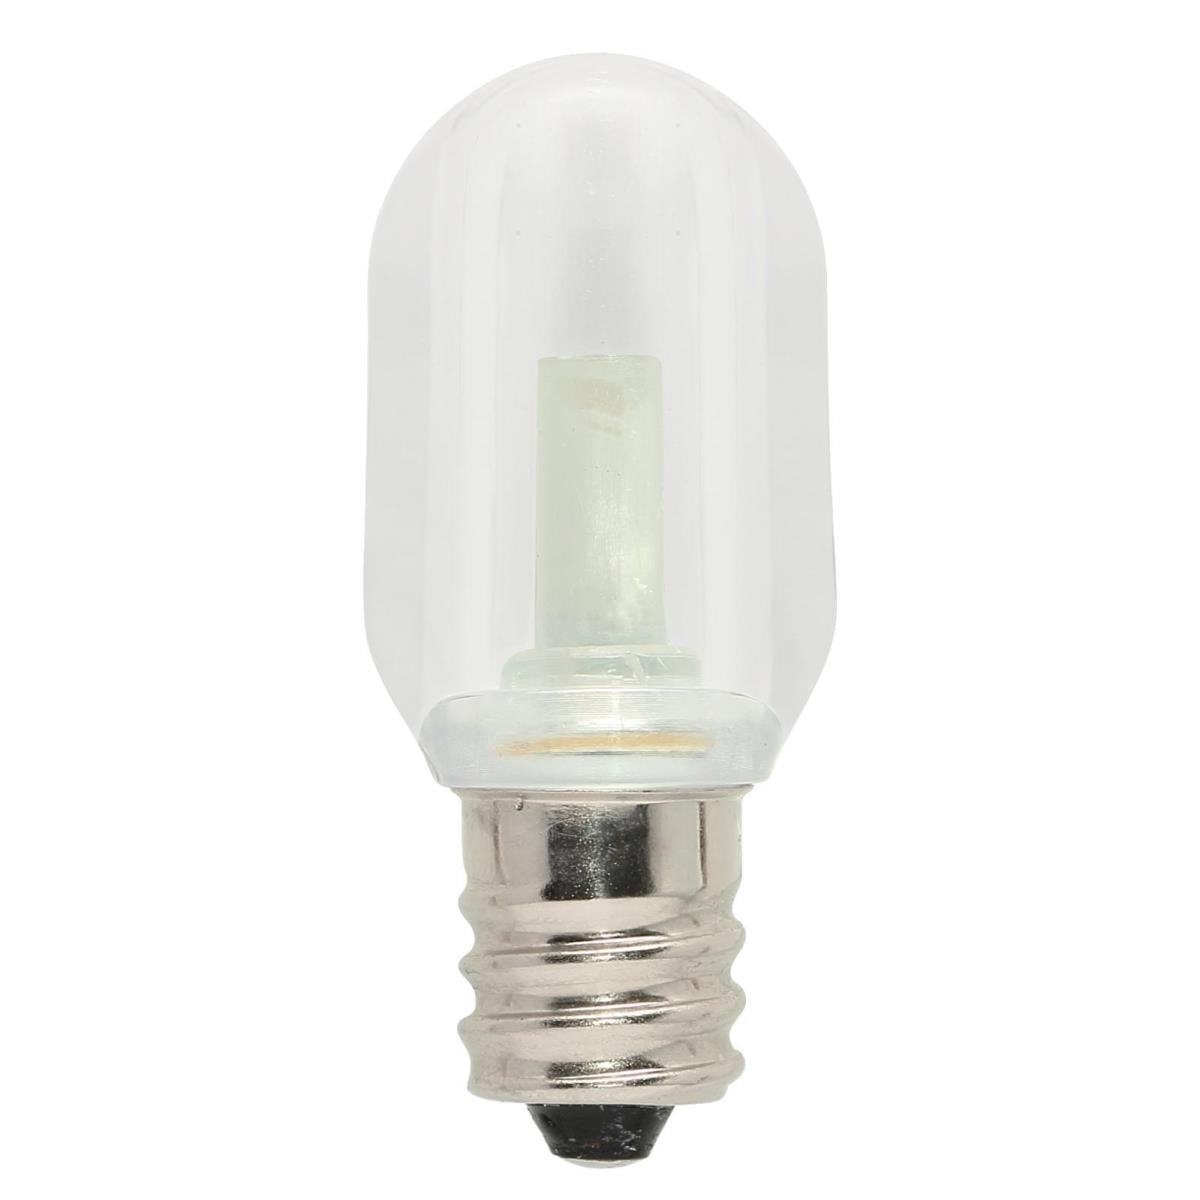 0.6W S6 LED Clear 2700K E12 (Candelabra) Base, 120 Volt, Card